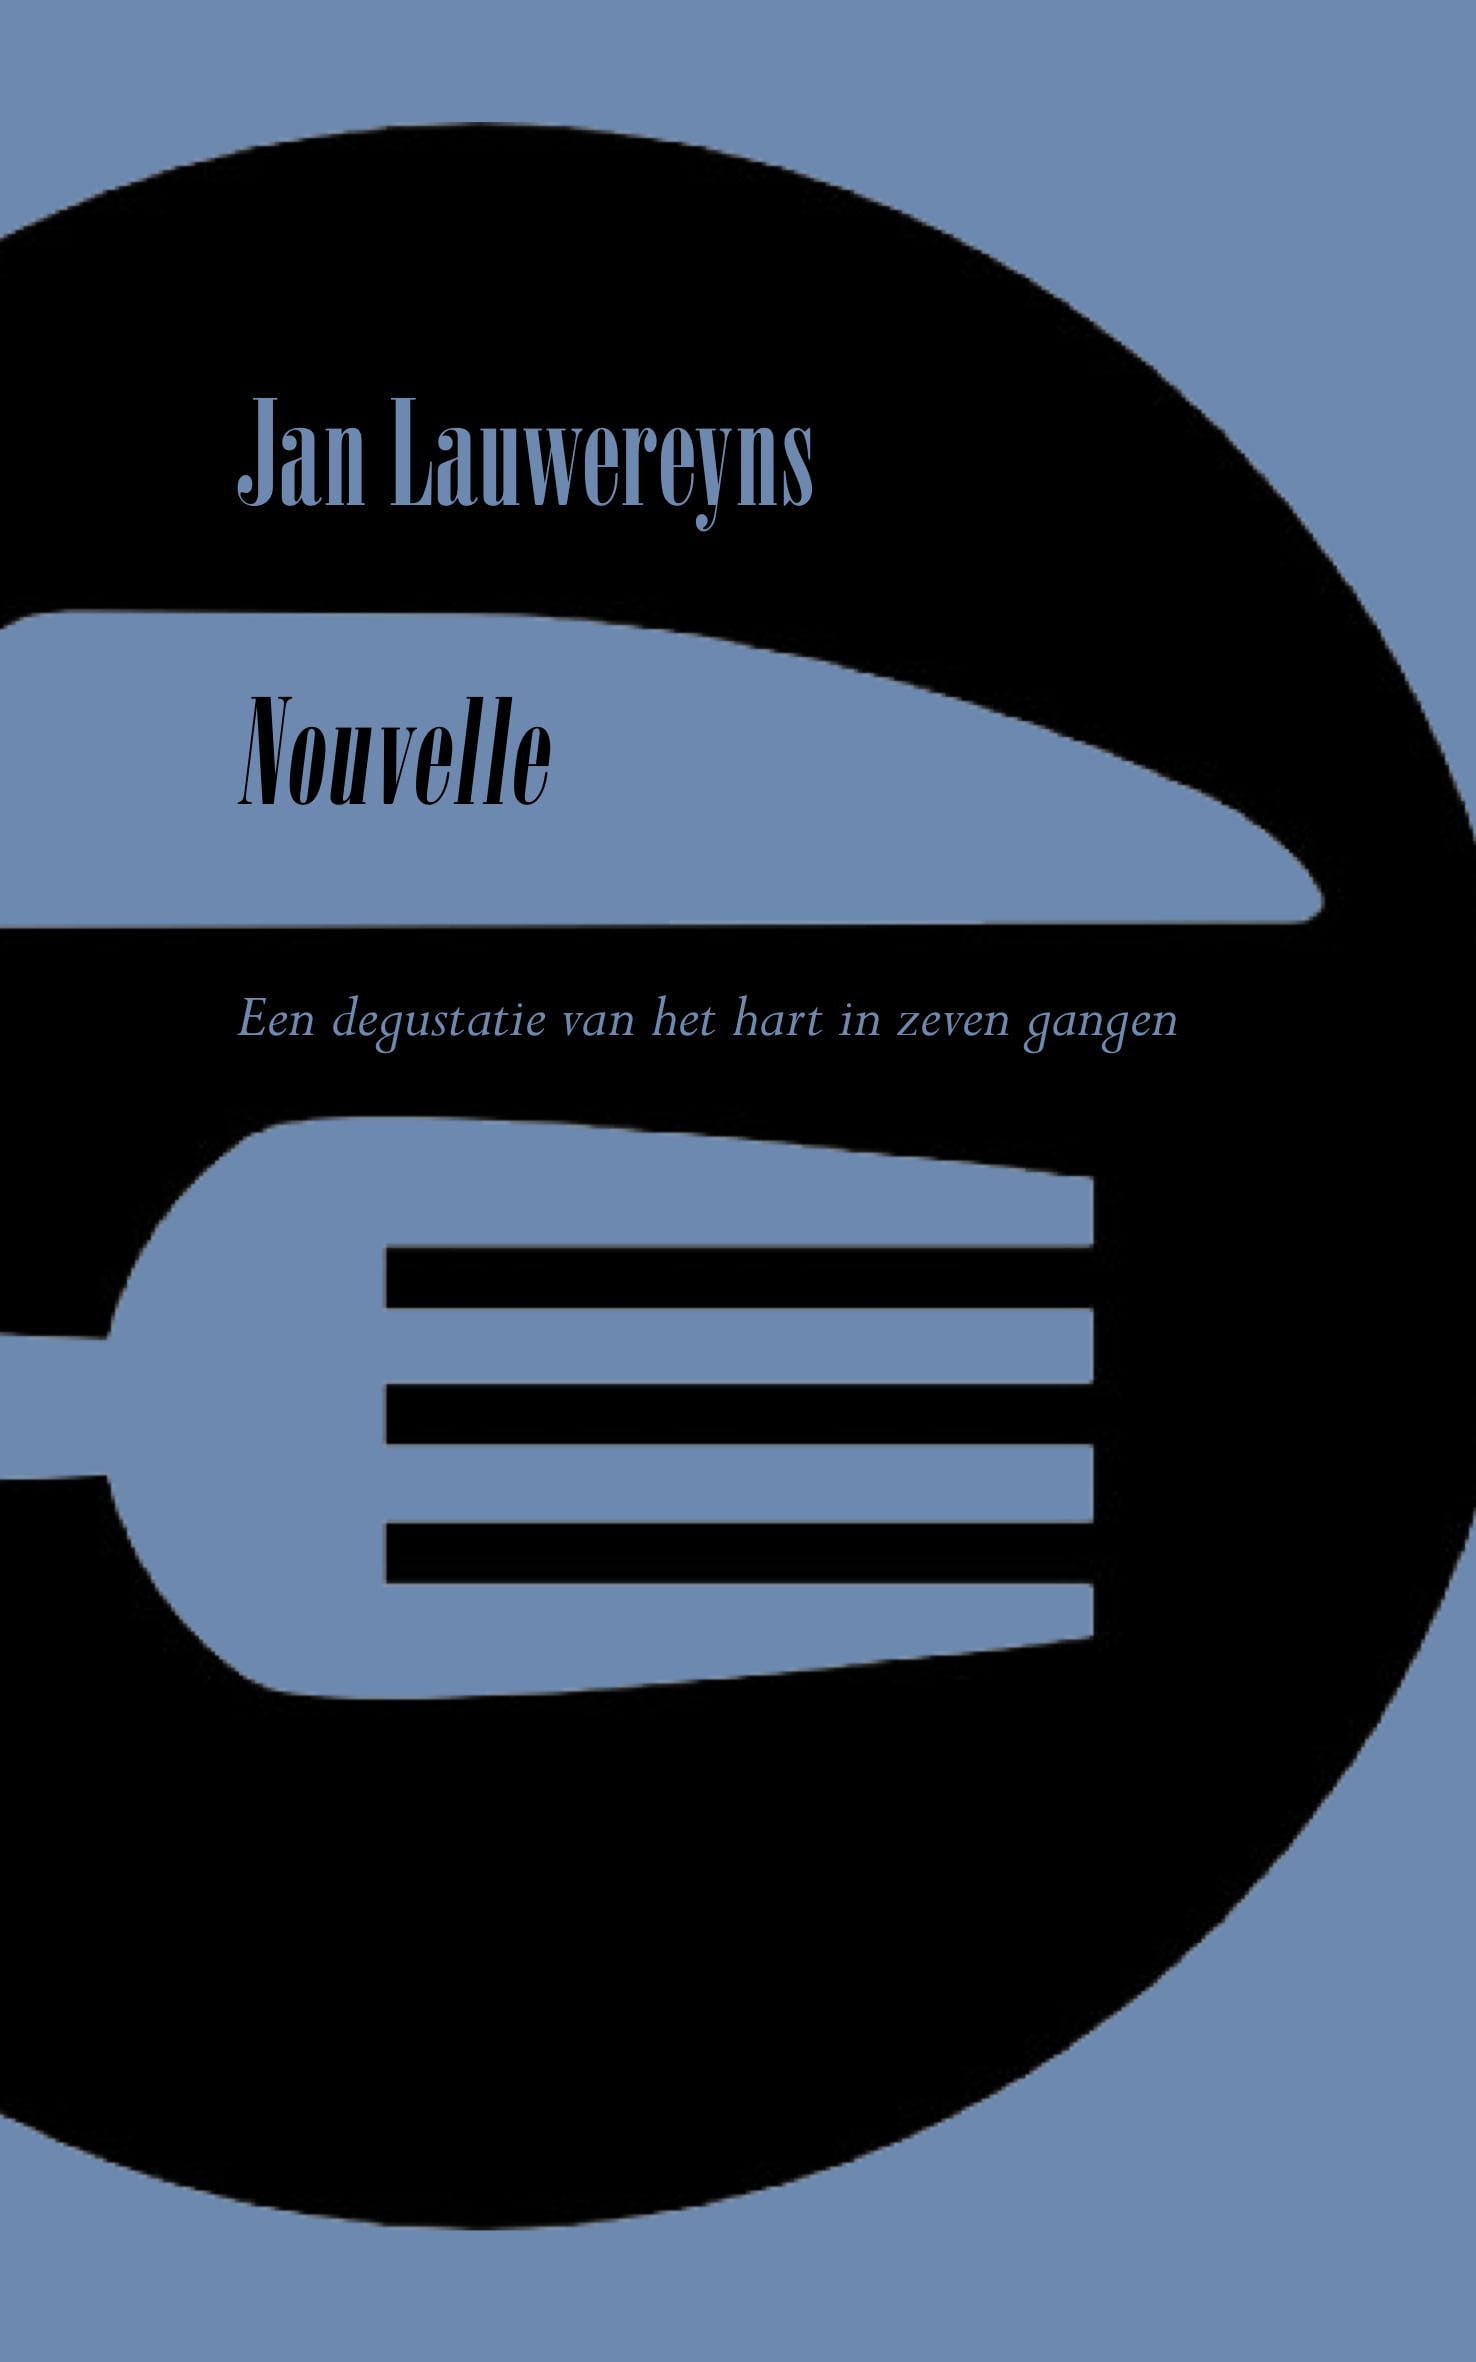 Nouvelle – Jan Lauwereyns